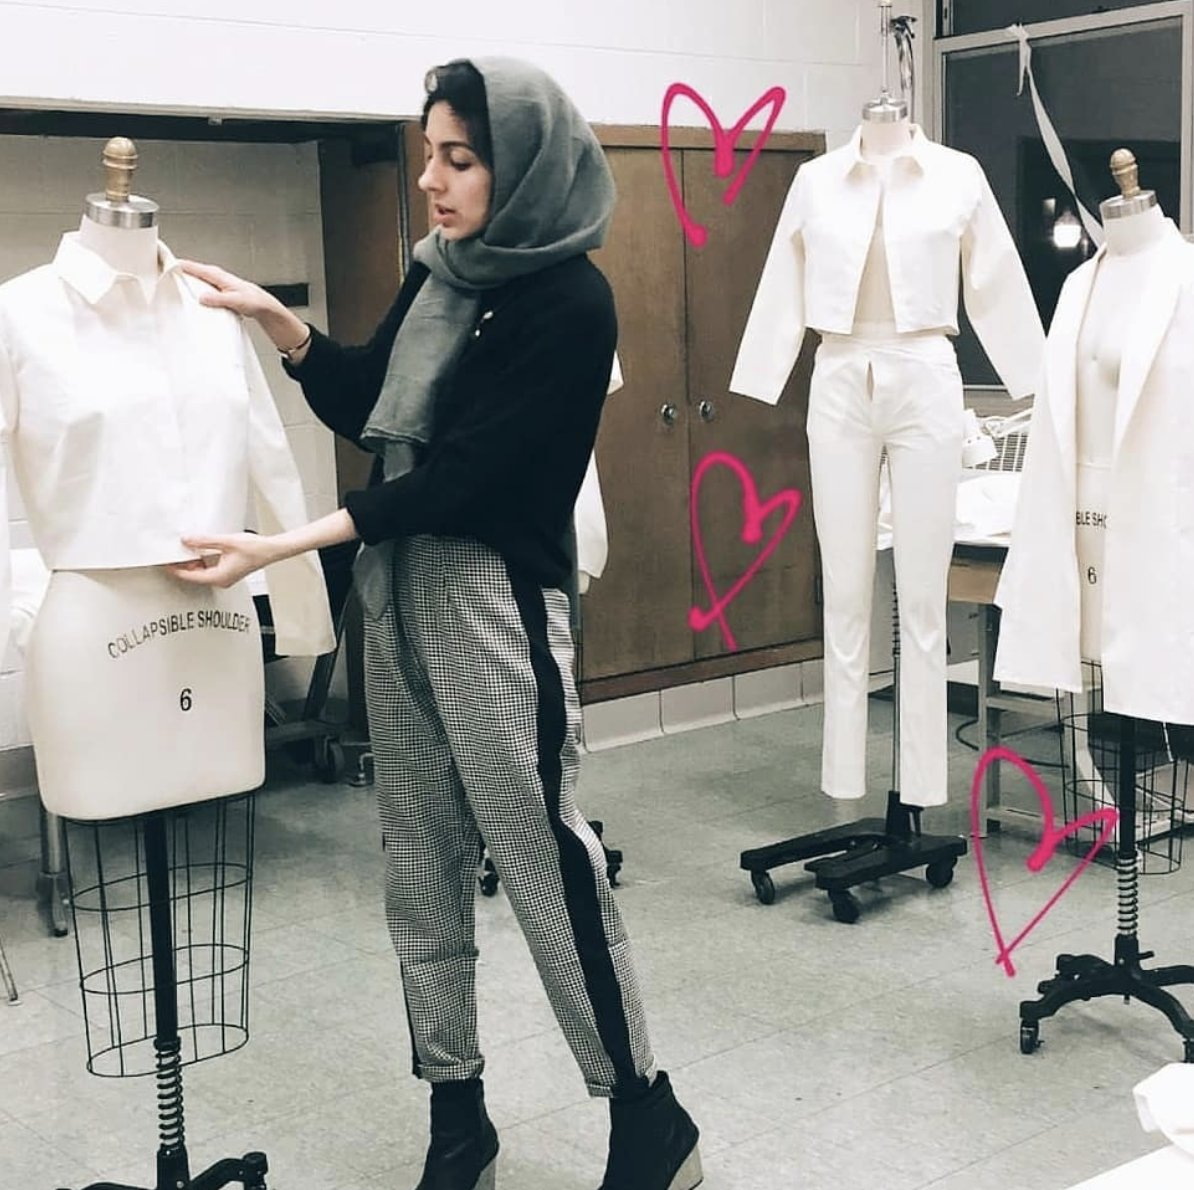 LET THE COUNTDOWN BEGIN! 9 DAYS TO GO until we&#39;re officially LIVE with the fundraiser &amp; website for our immigrant &amp; refugee-women run clothing manufacturing co-operative here in Chicago. Literally, we&#39;re about to change the game of domestic fashion production. Ya&#39;ll aren&#39;t ready! <br>http://pic.twitter.com/As5sy3zeUc